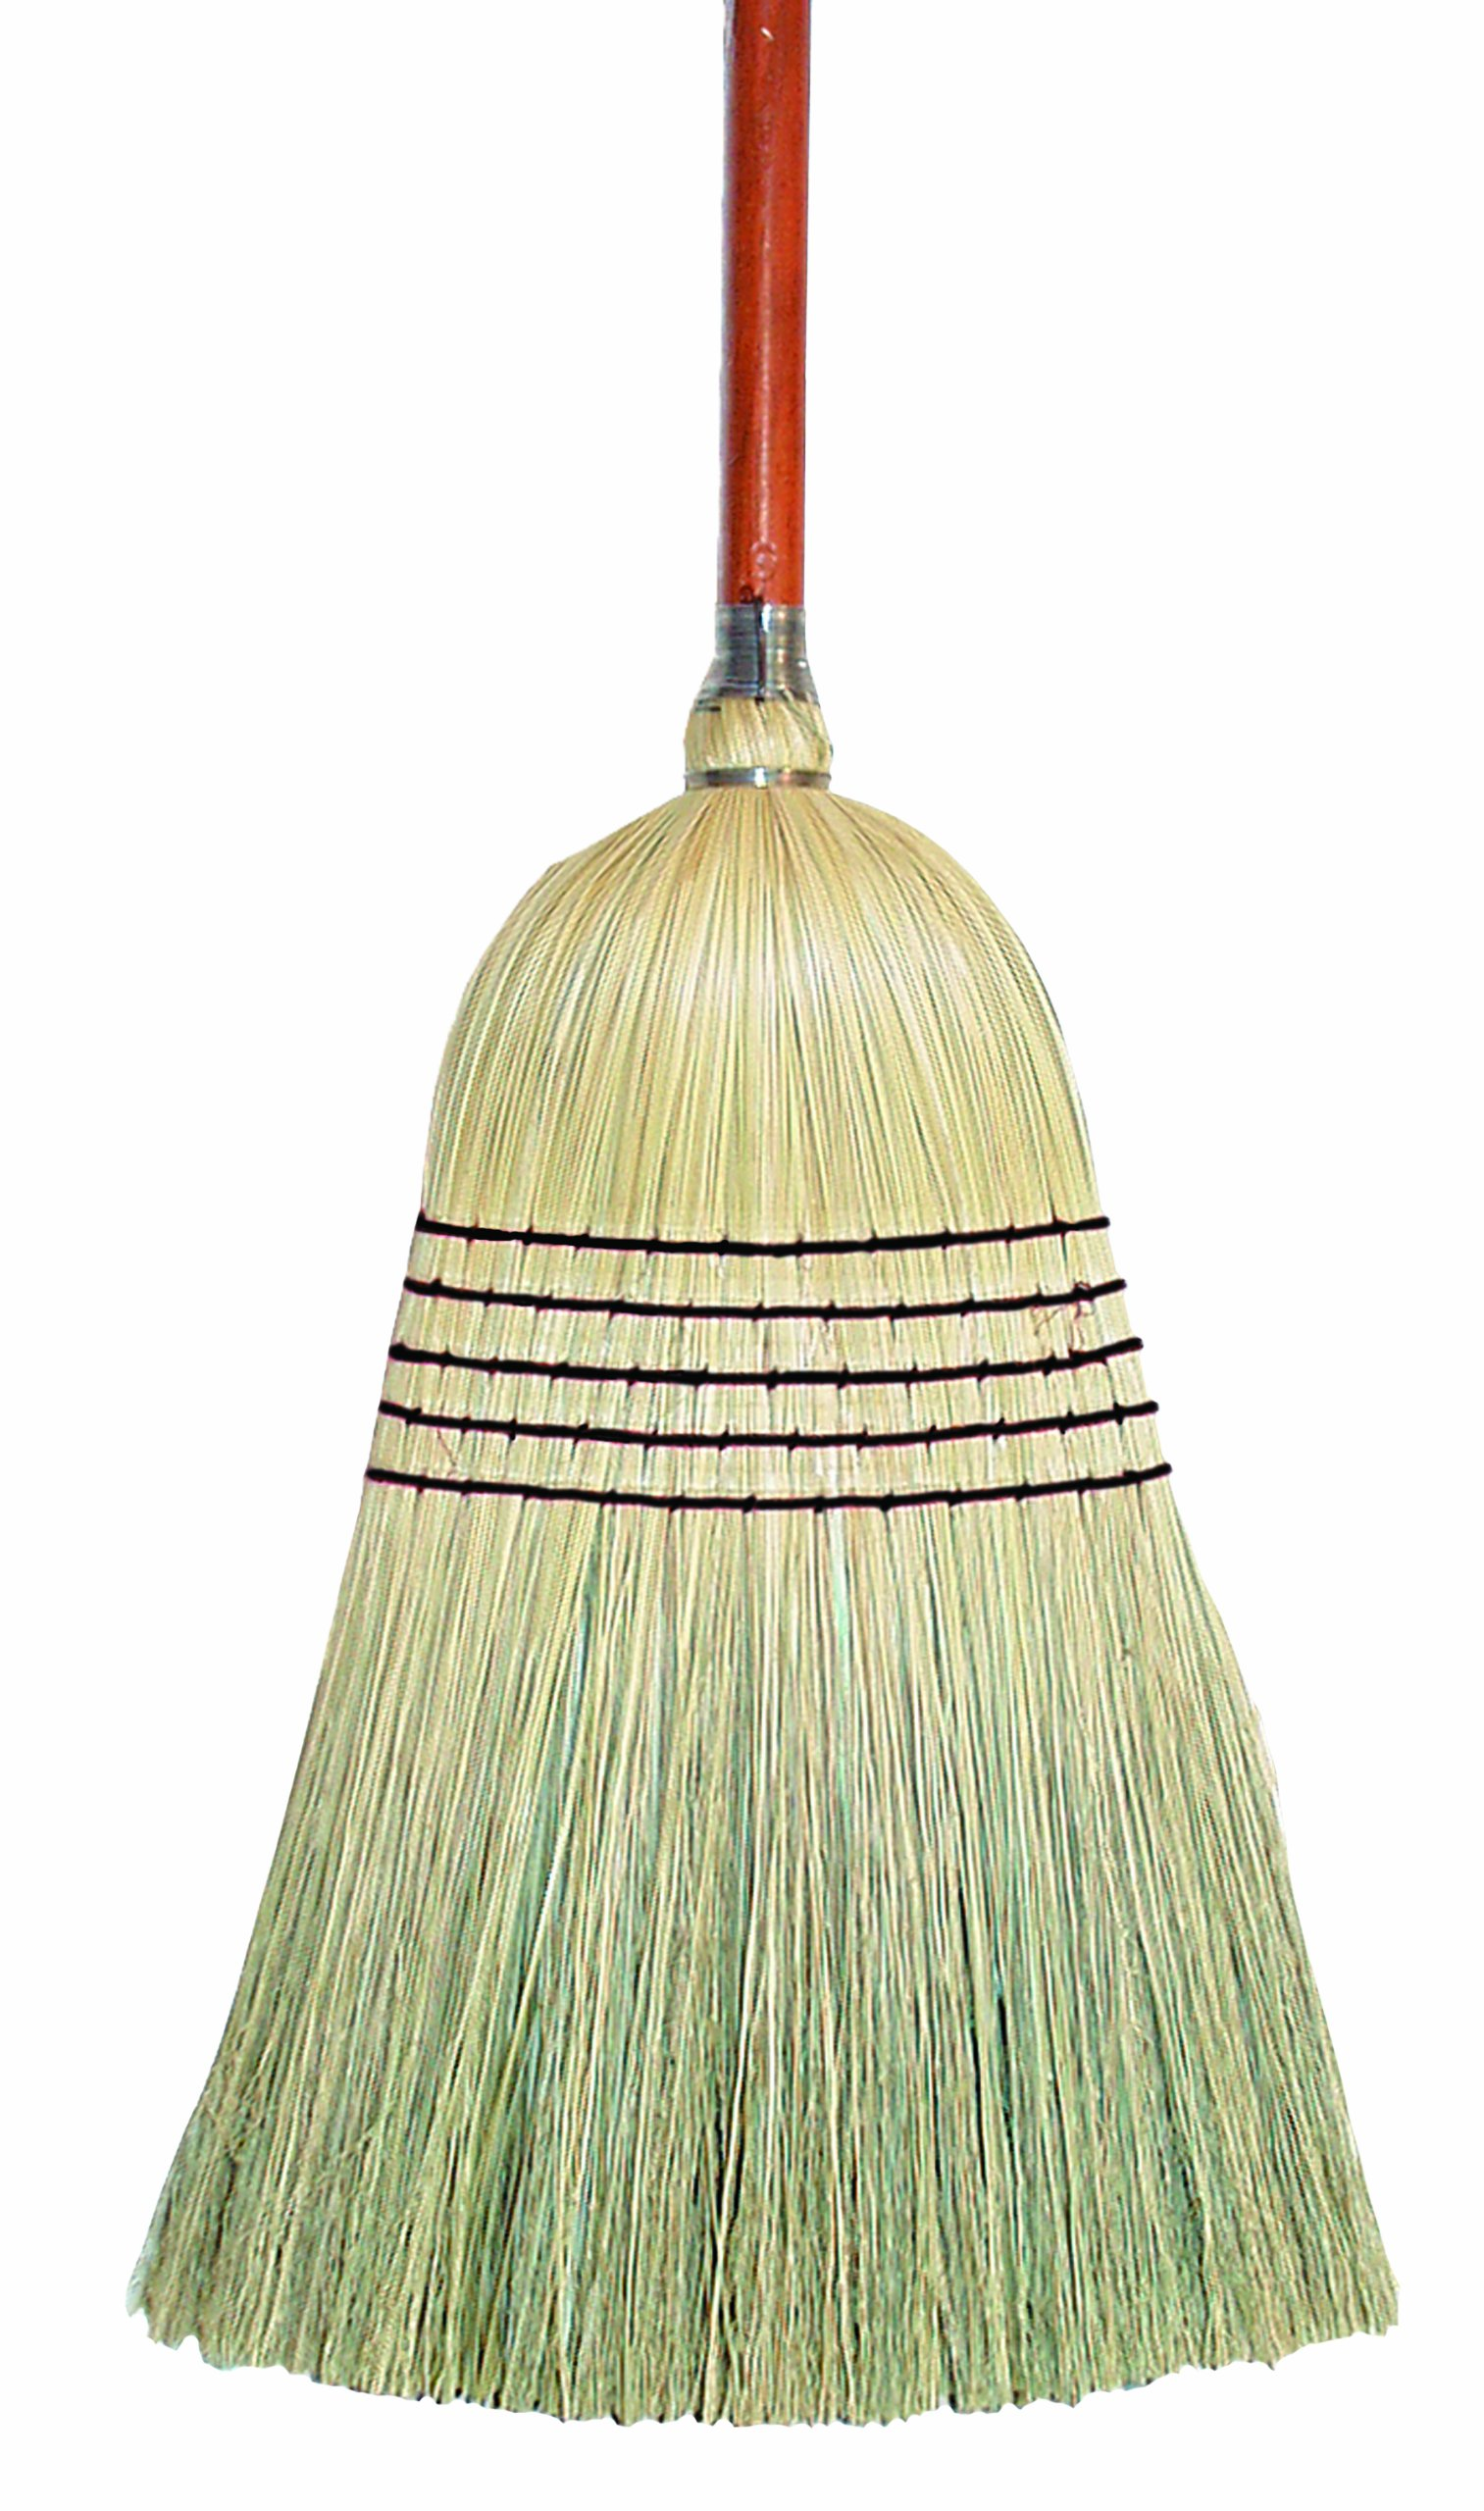 Wilen E503500, Lobby Corn Blend Broom with 7/8'' Handle, 38-1/2'' Length (Case of 12)